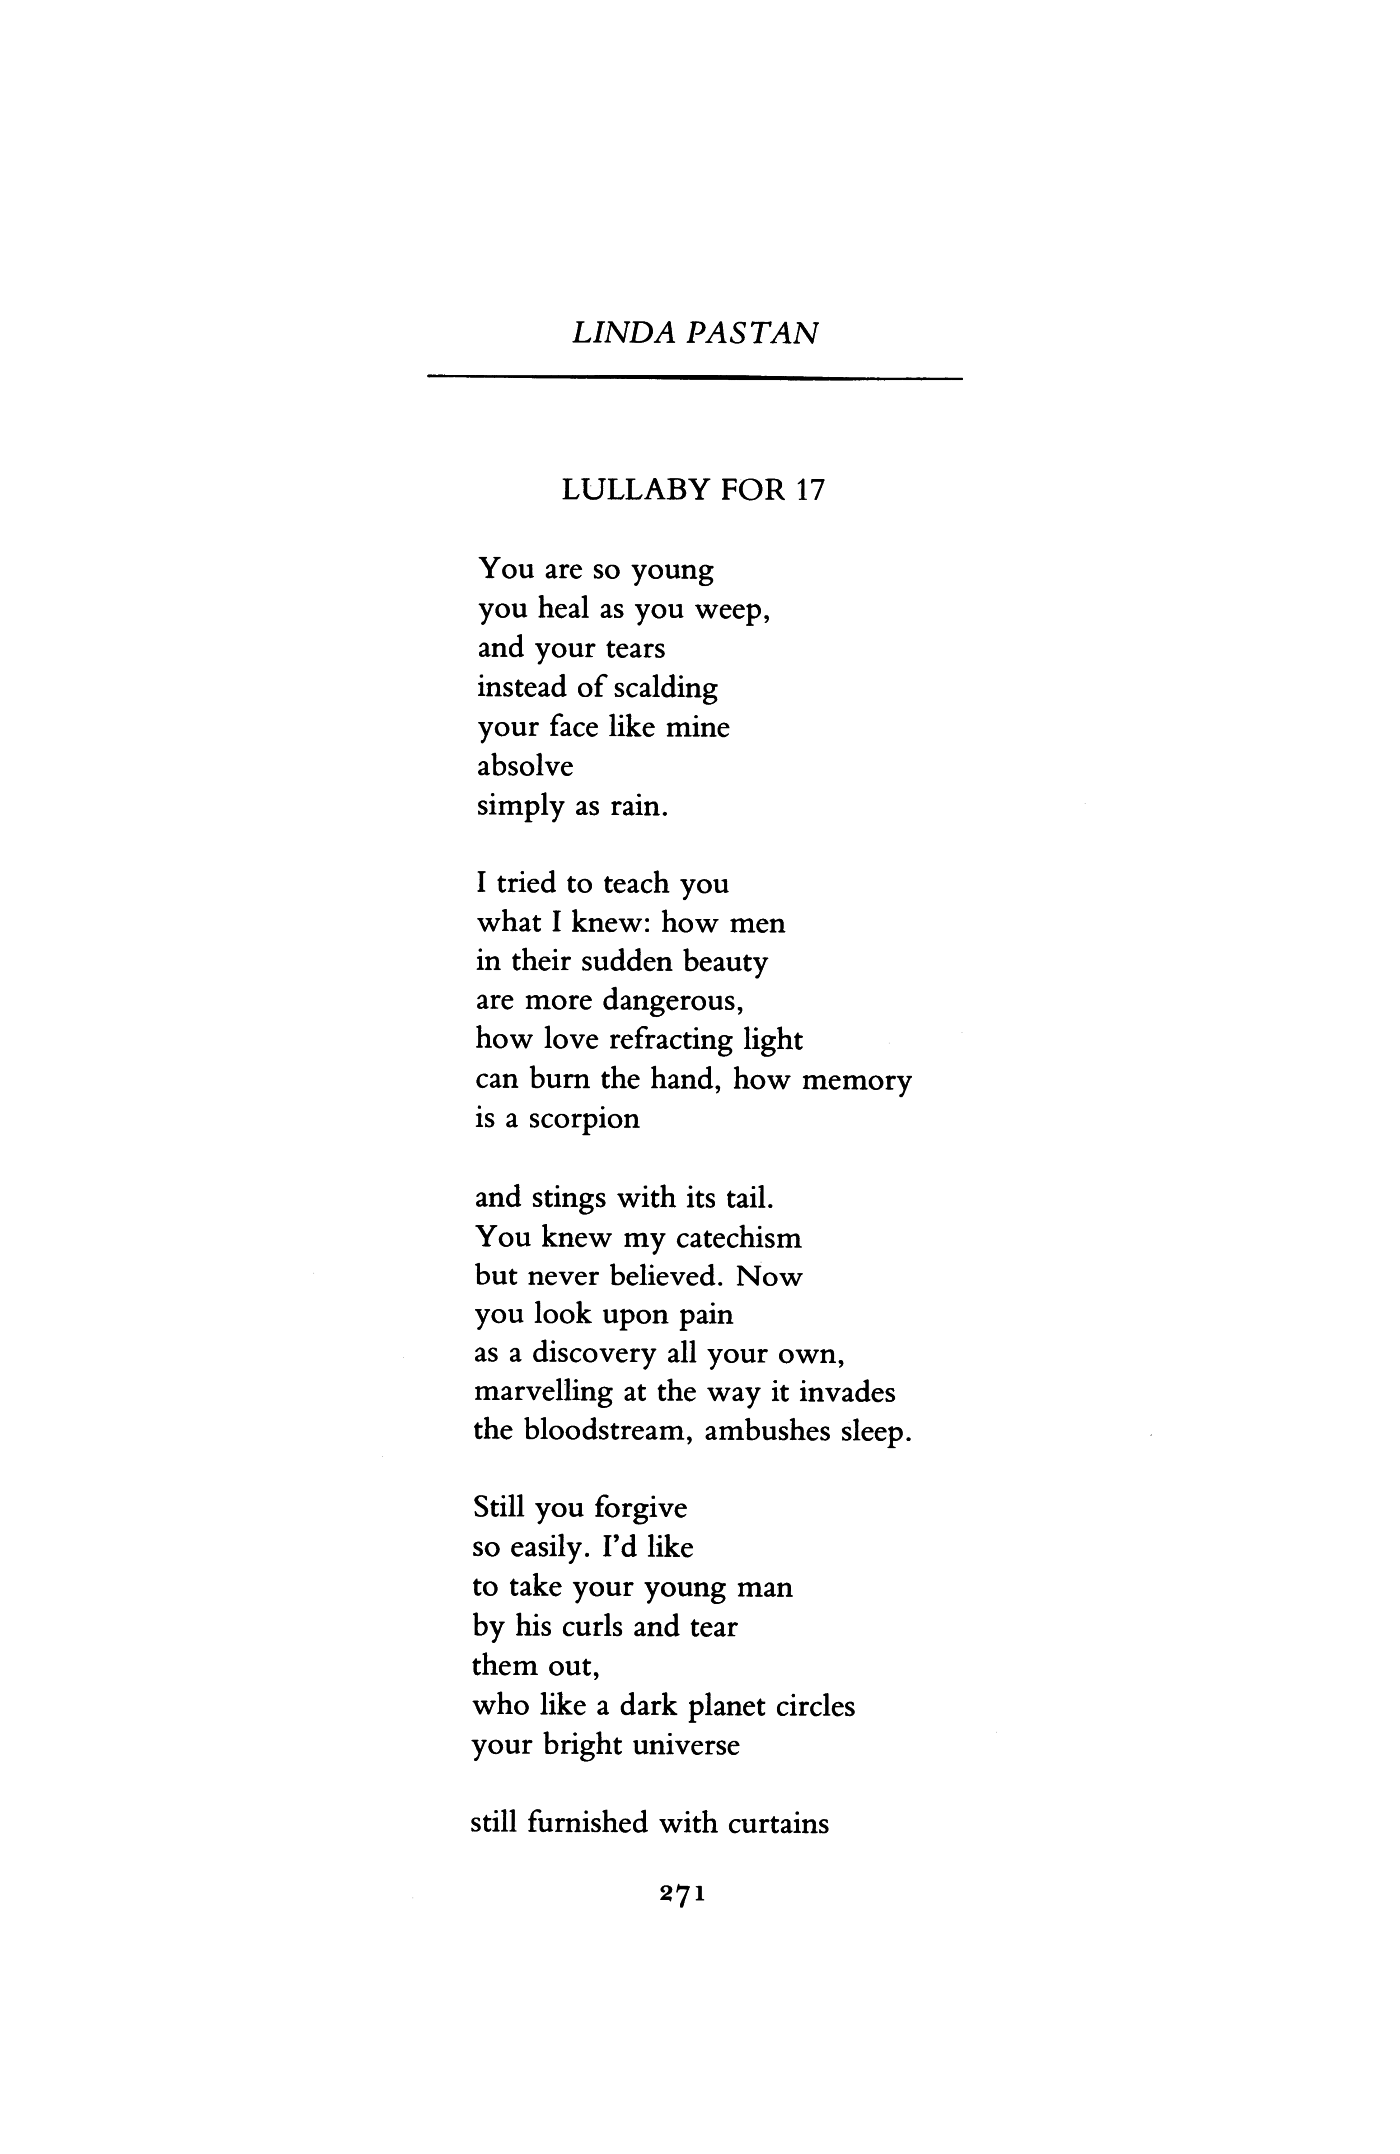 Lullaby for 17 by linda pastan poetry magazine august 1983 pronofoot35fo Image collections